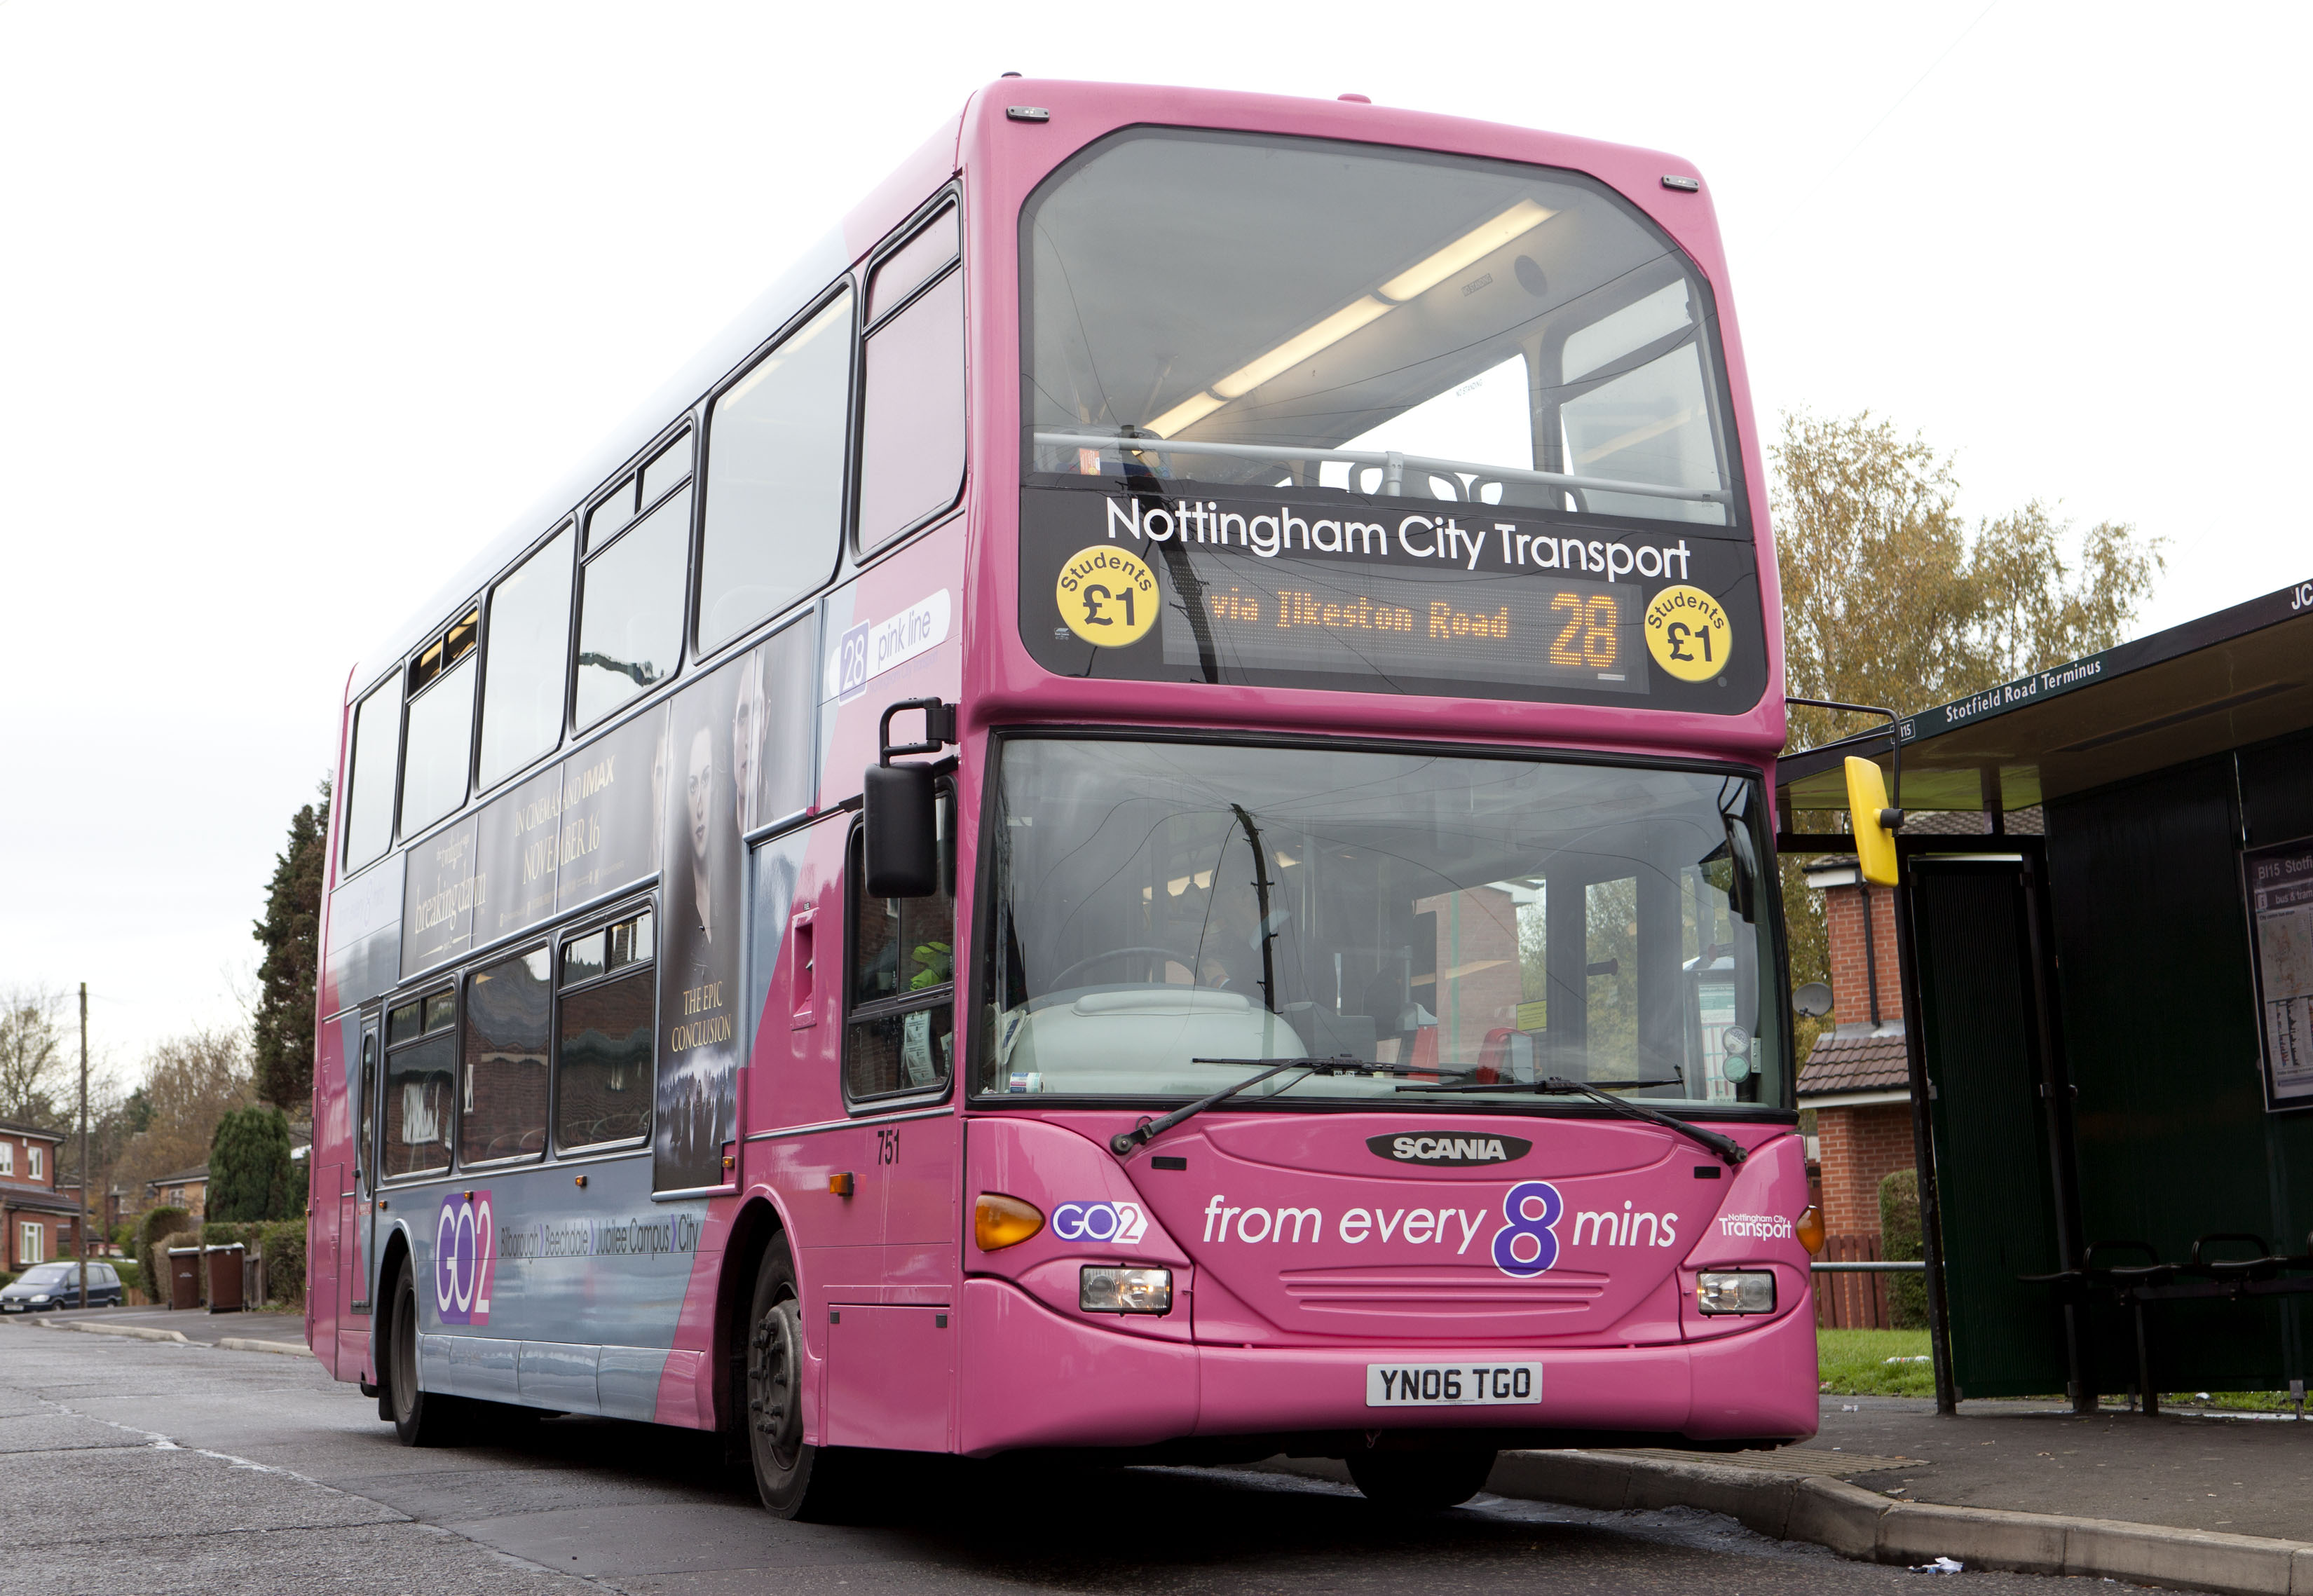 PFC Brakes on Nottingham City Transport bus